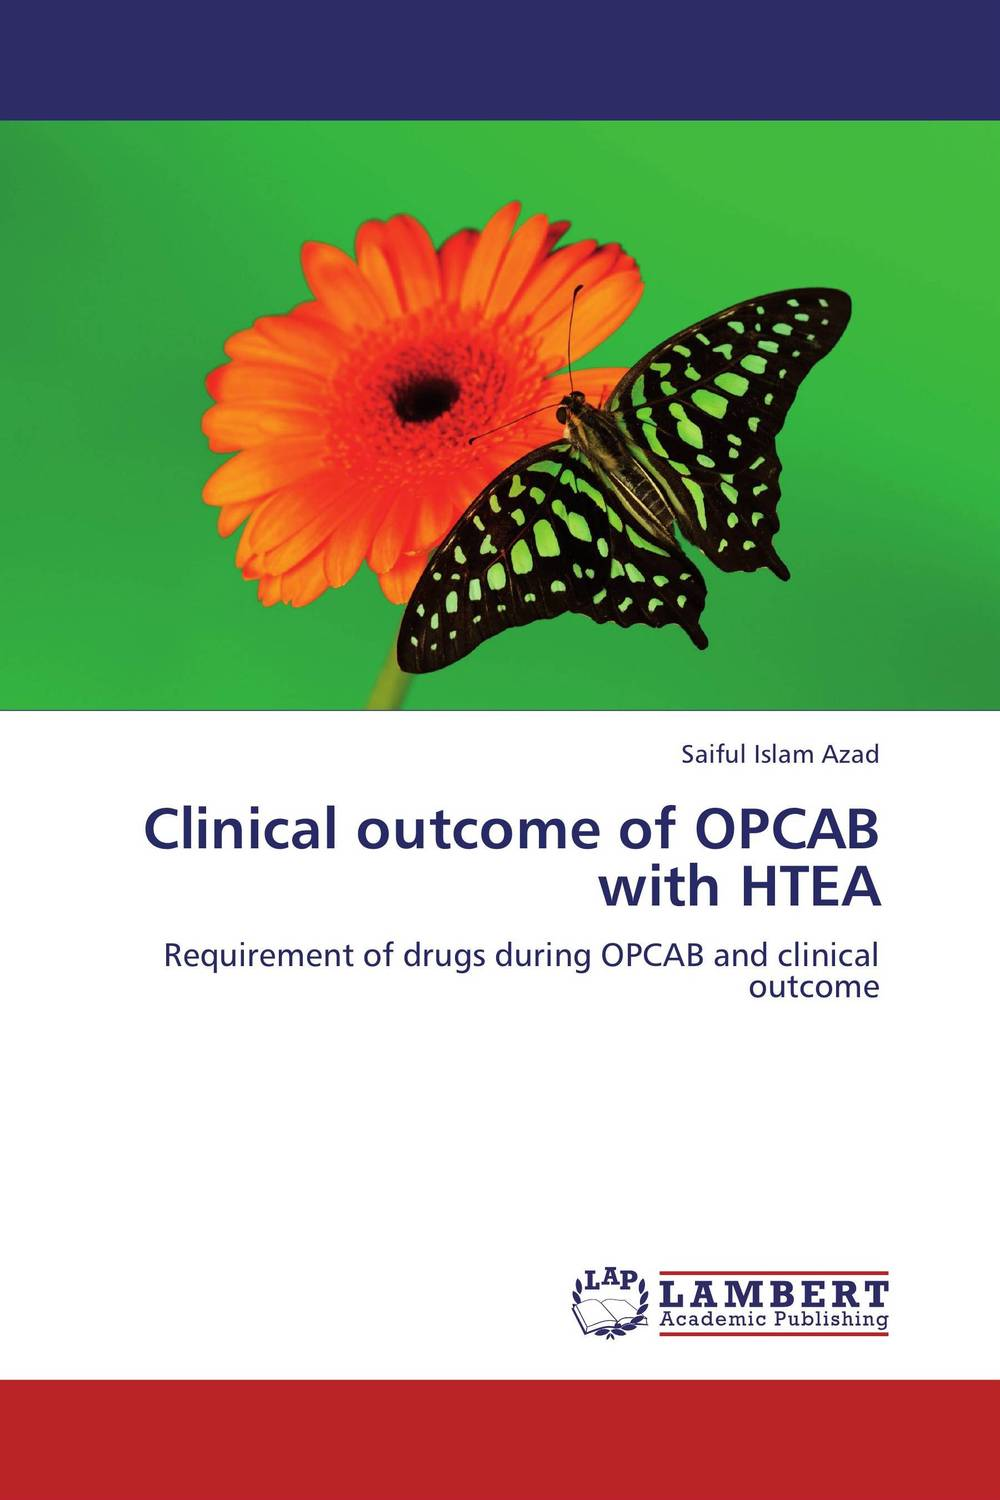 Clinical outcome of OPCAB with HTEA clinical pathway for postoperative organ transplants